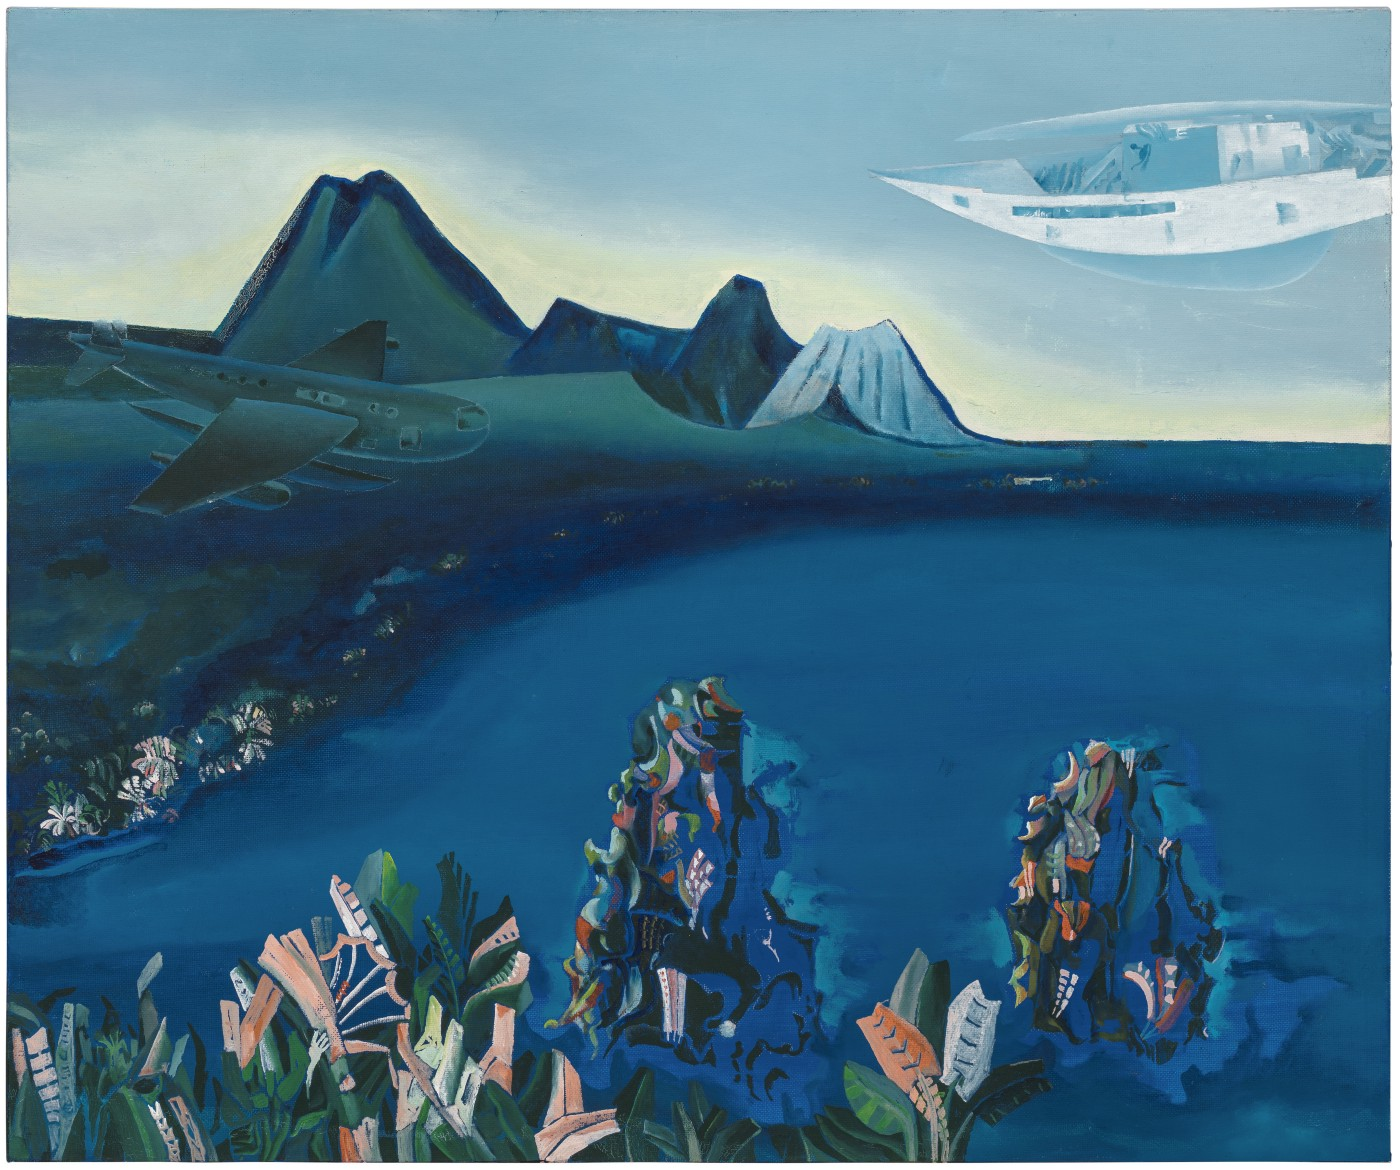 Dušan Marek, born Bítouchov, Czechoslovakia 1926, died Adelaide 1993, Rabaul revisited, 1992, Eden Hills, South Australia, oil, synthetic polymer paint on canvas on board, 50.7 x 61.0 x 4.4 cm; Private collection L/SAS/8 2